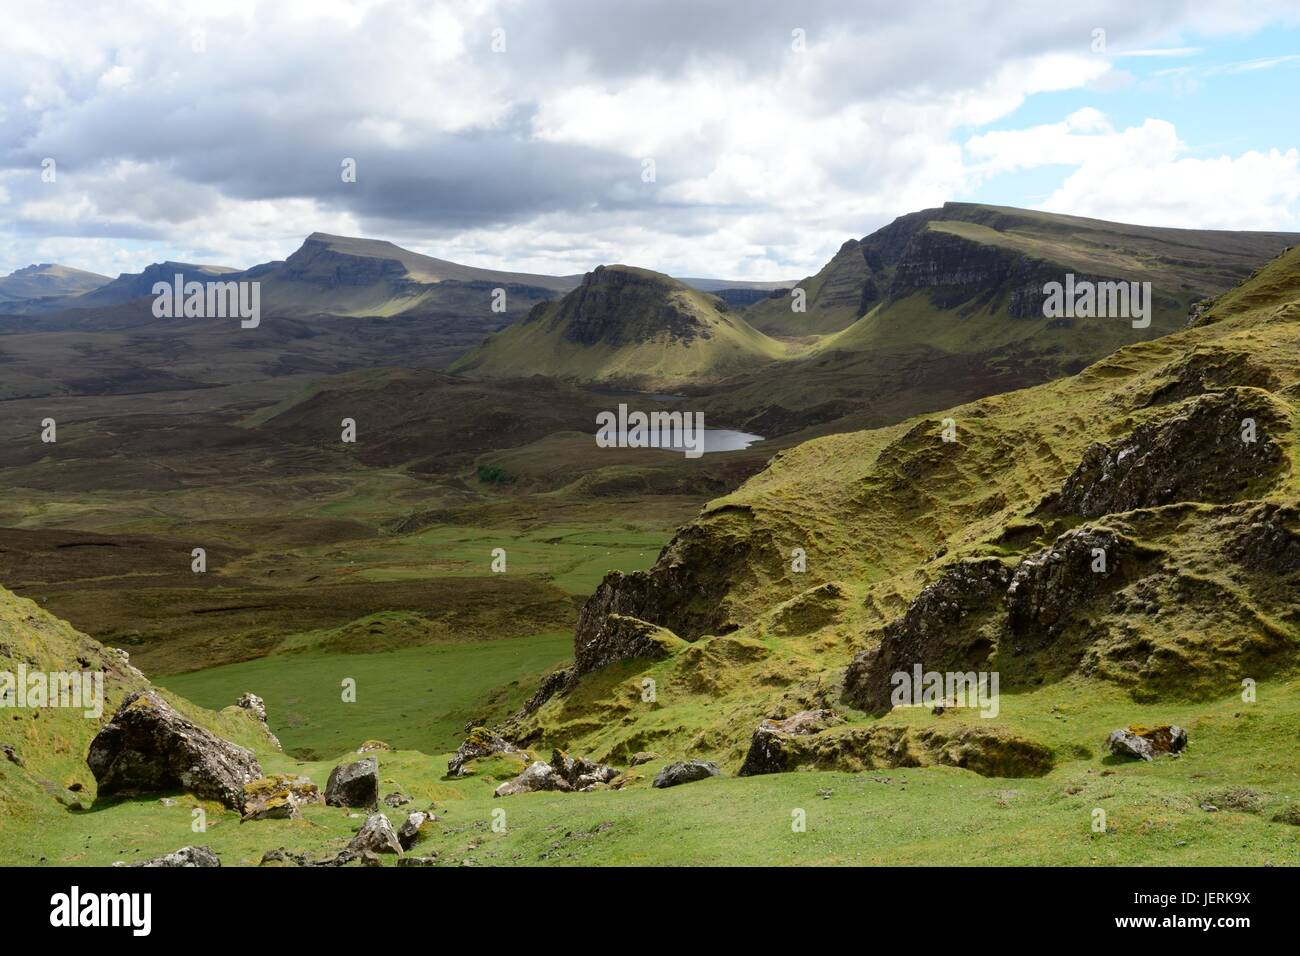 View over the mystical landscape of the Quiraing mountains Isle of Skye Trotternish Inner Hebrides Scotland UK GB - Stock Image